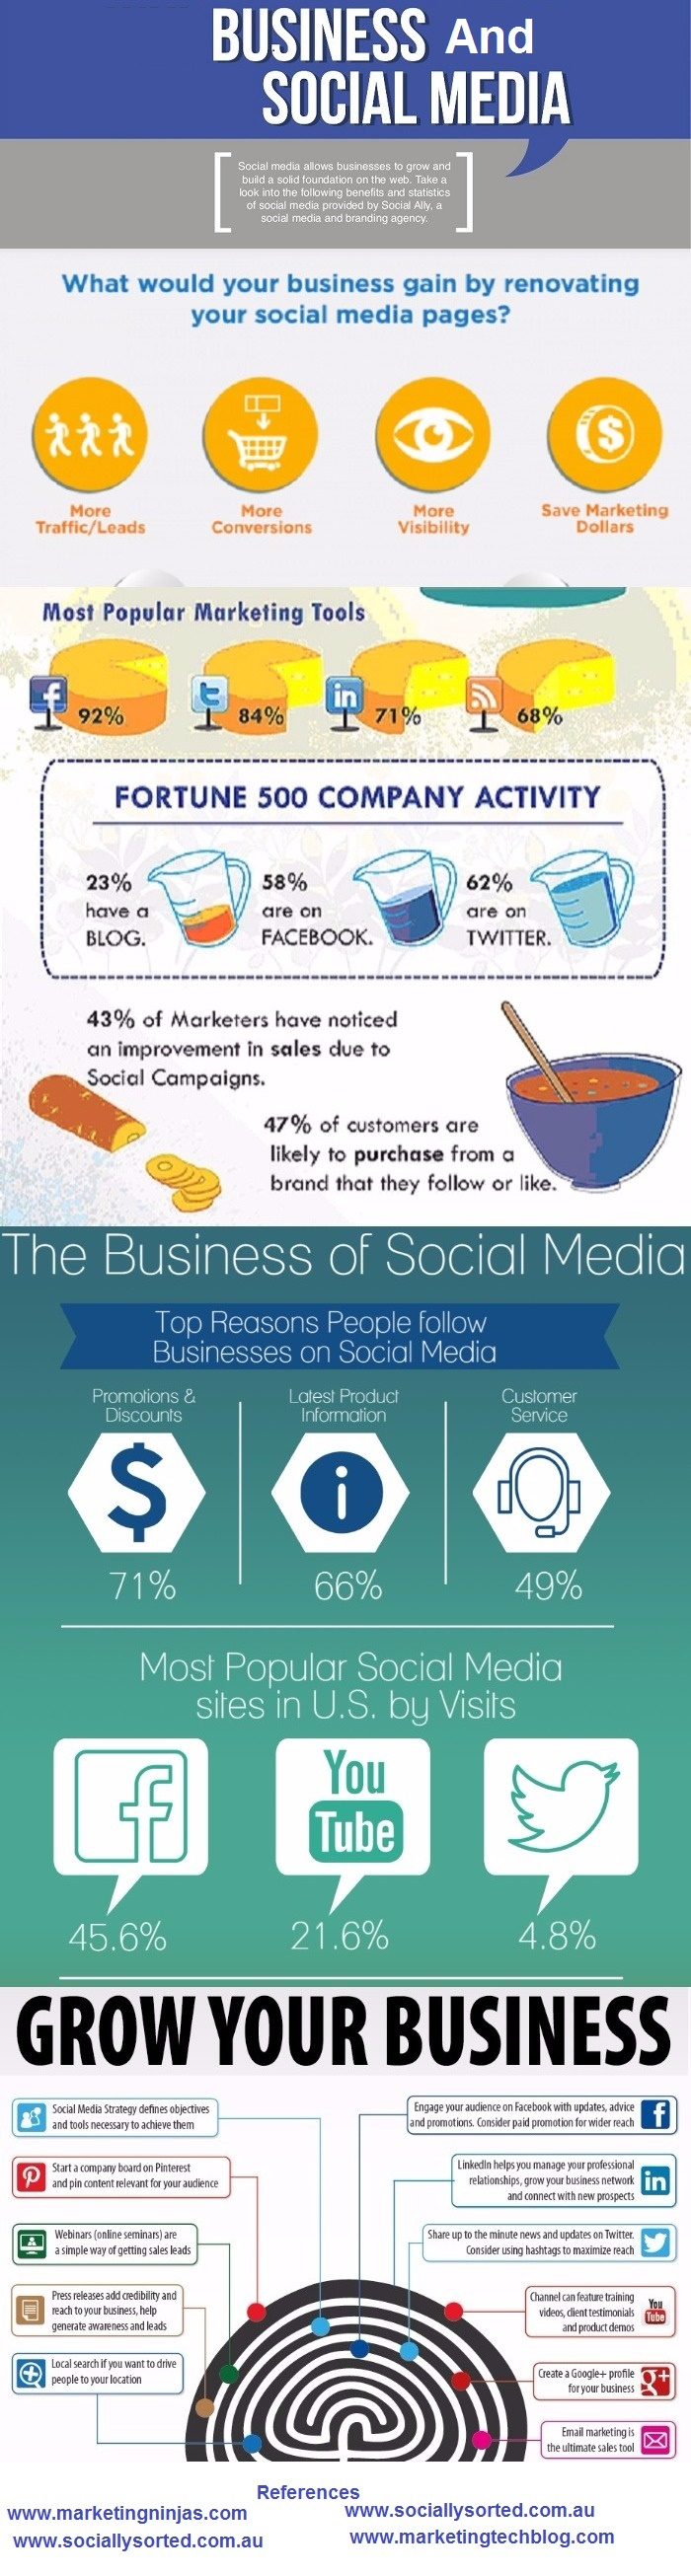 2-Business and social media - infographic